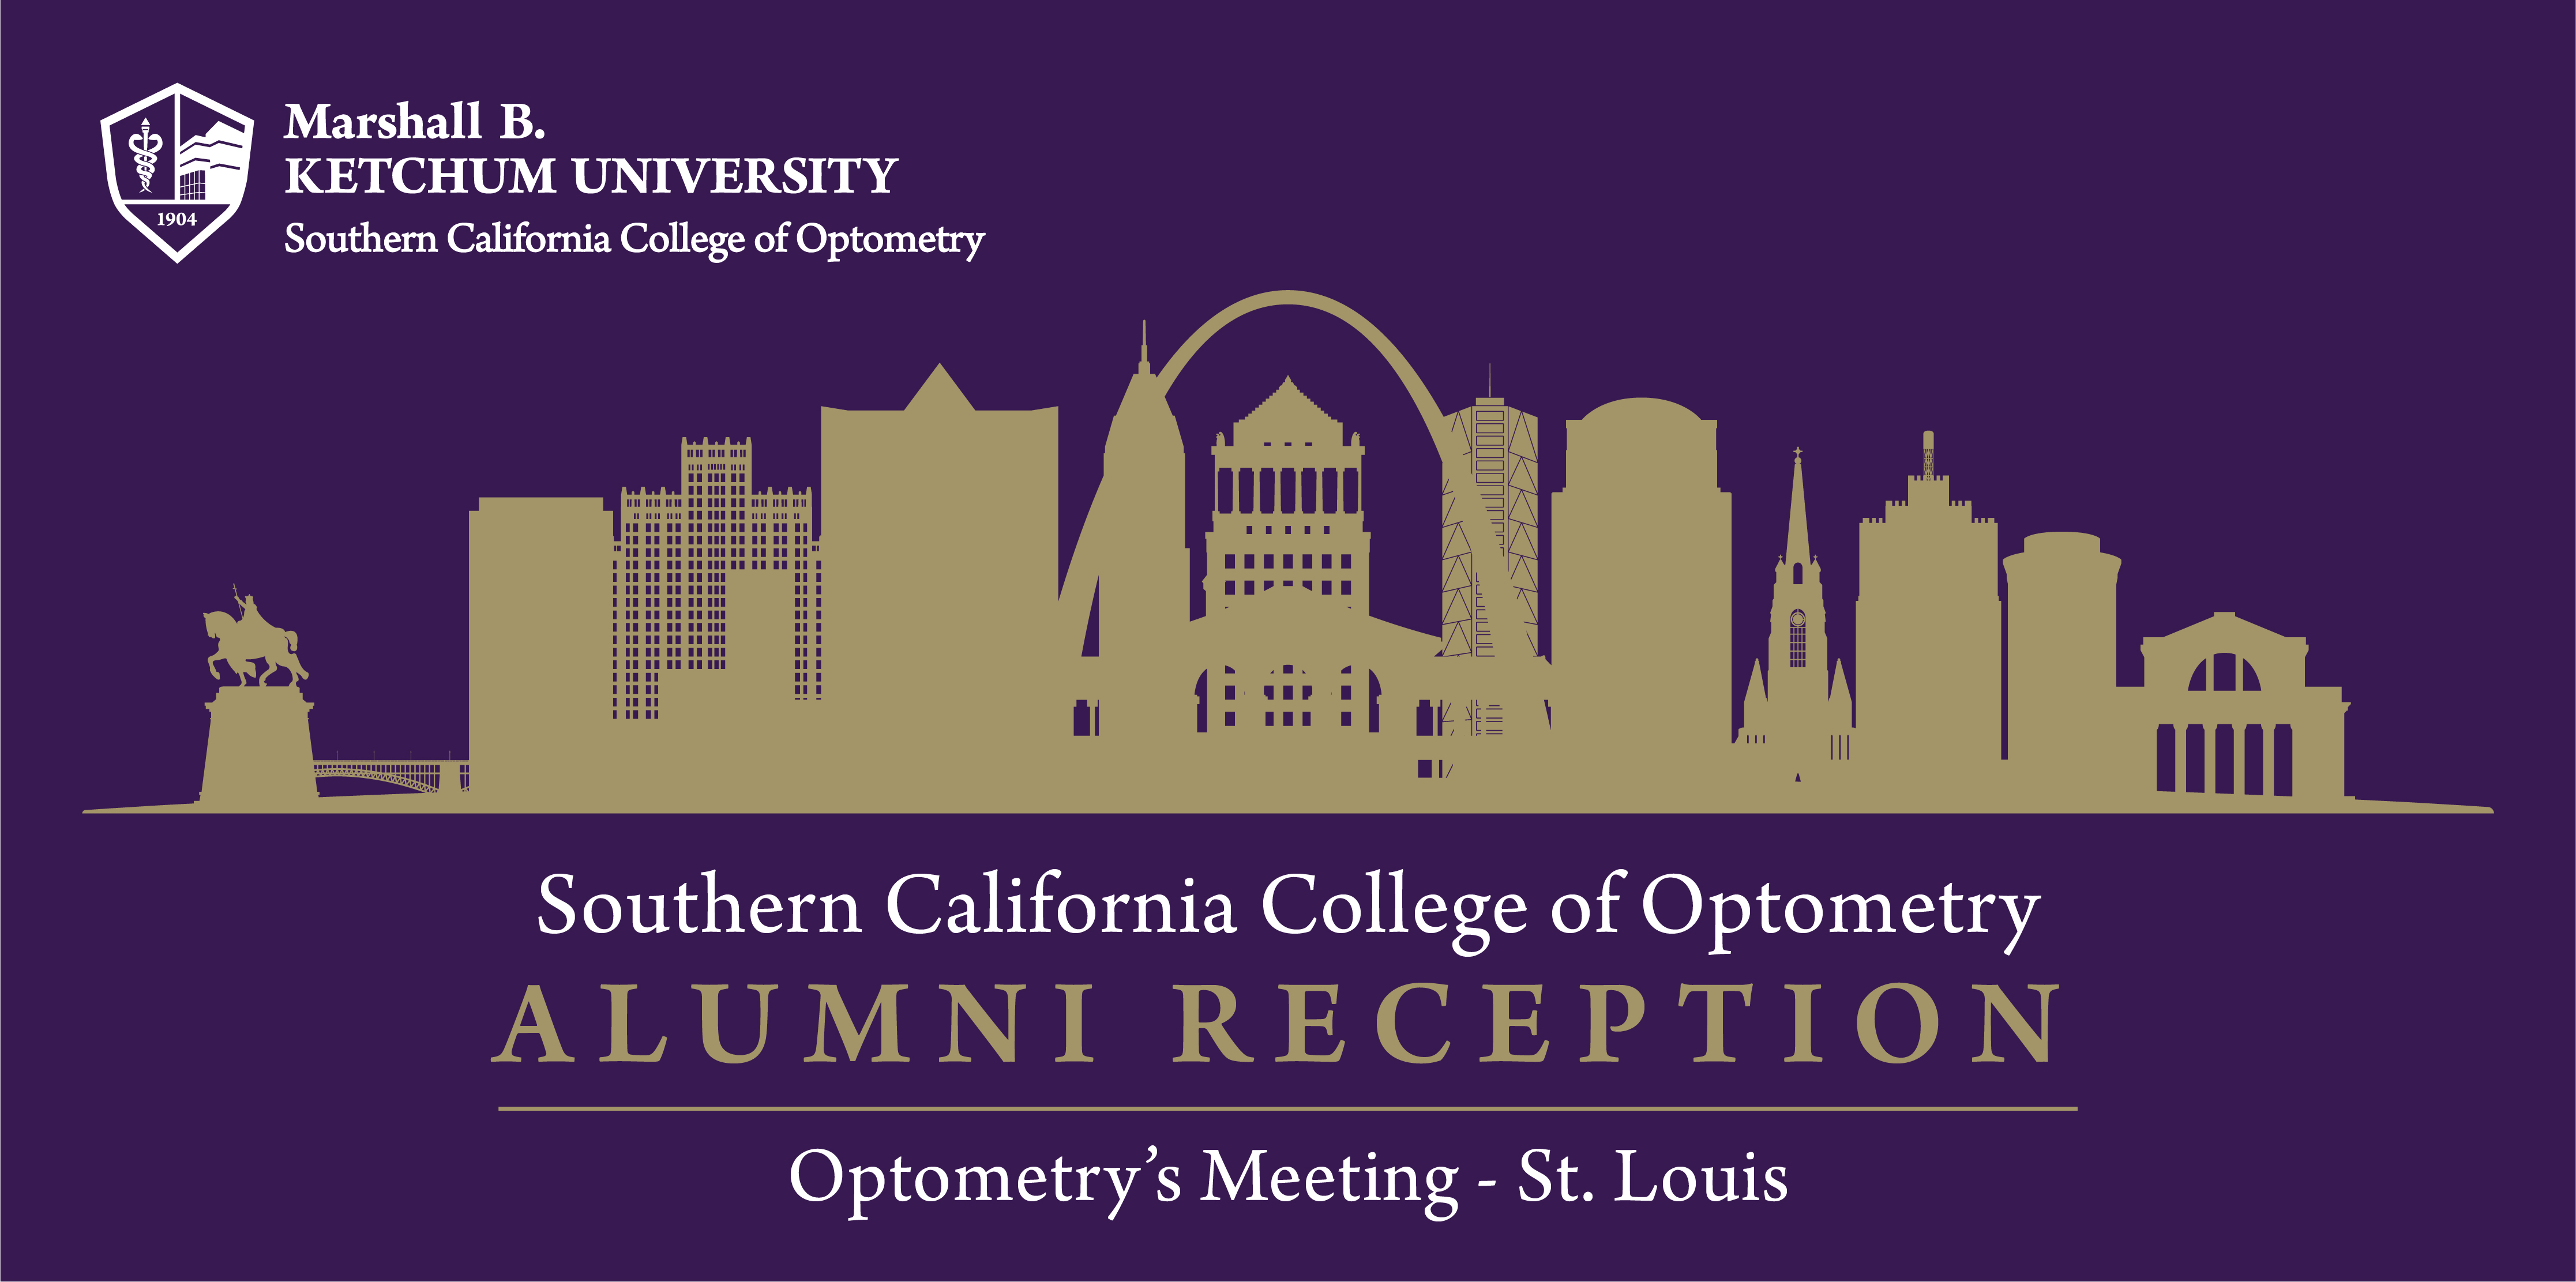 SCCO Alumni Reception at Optometry's Meeting 2019